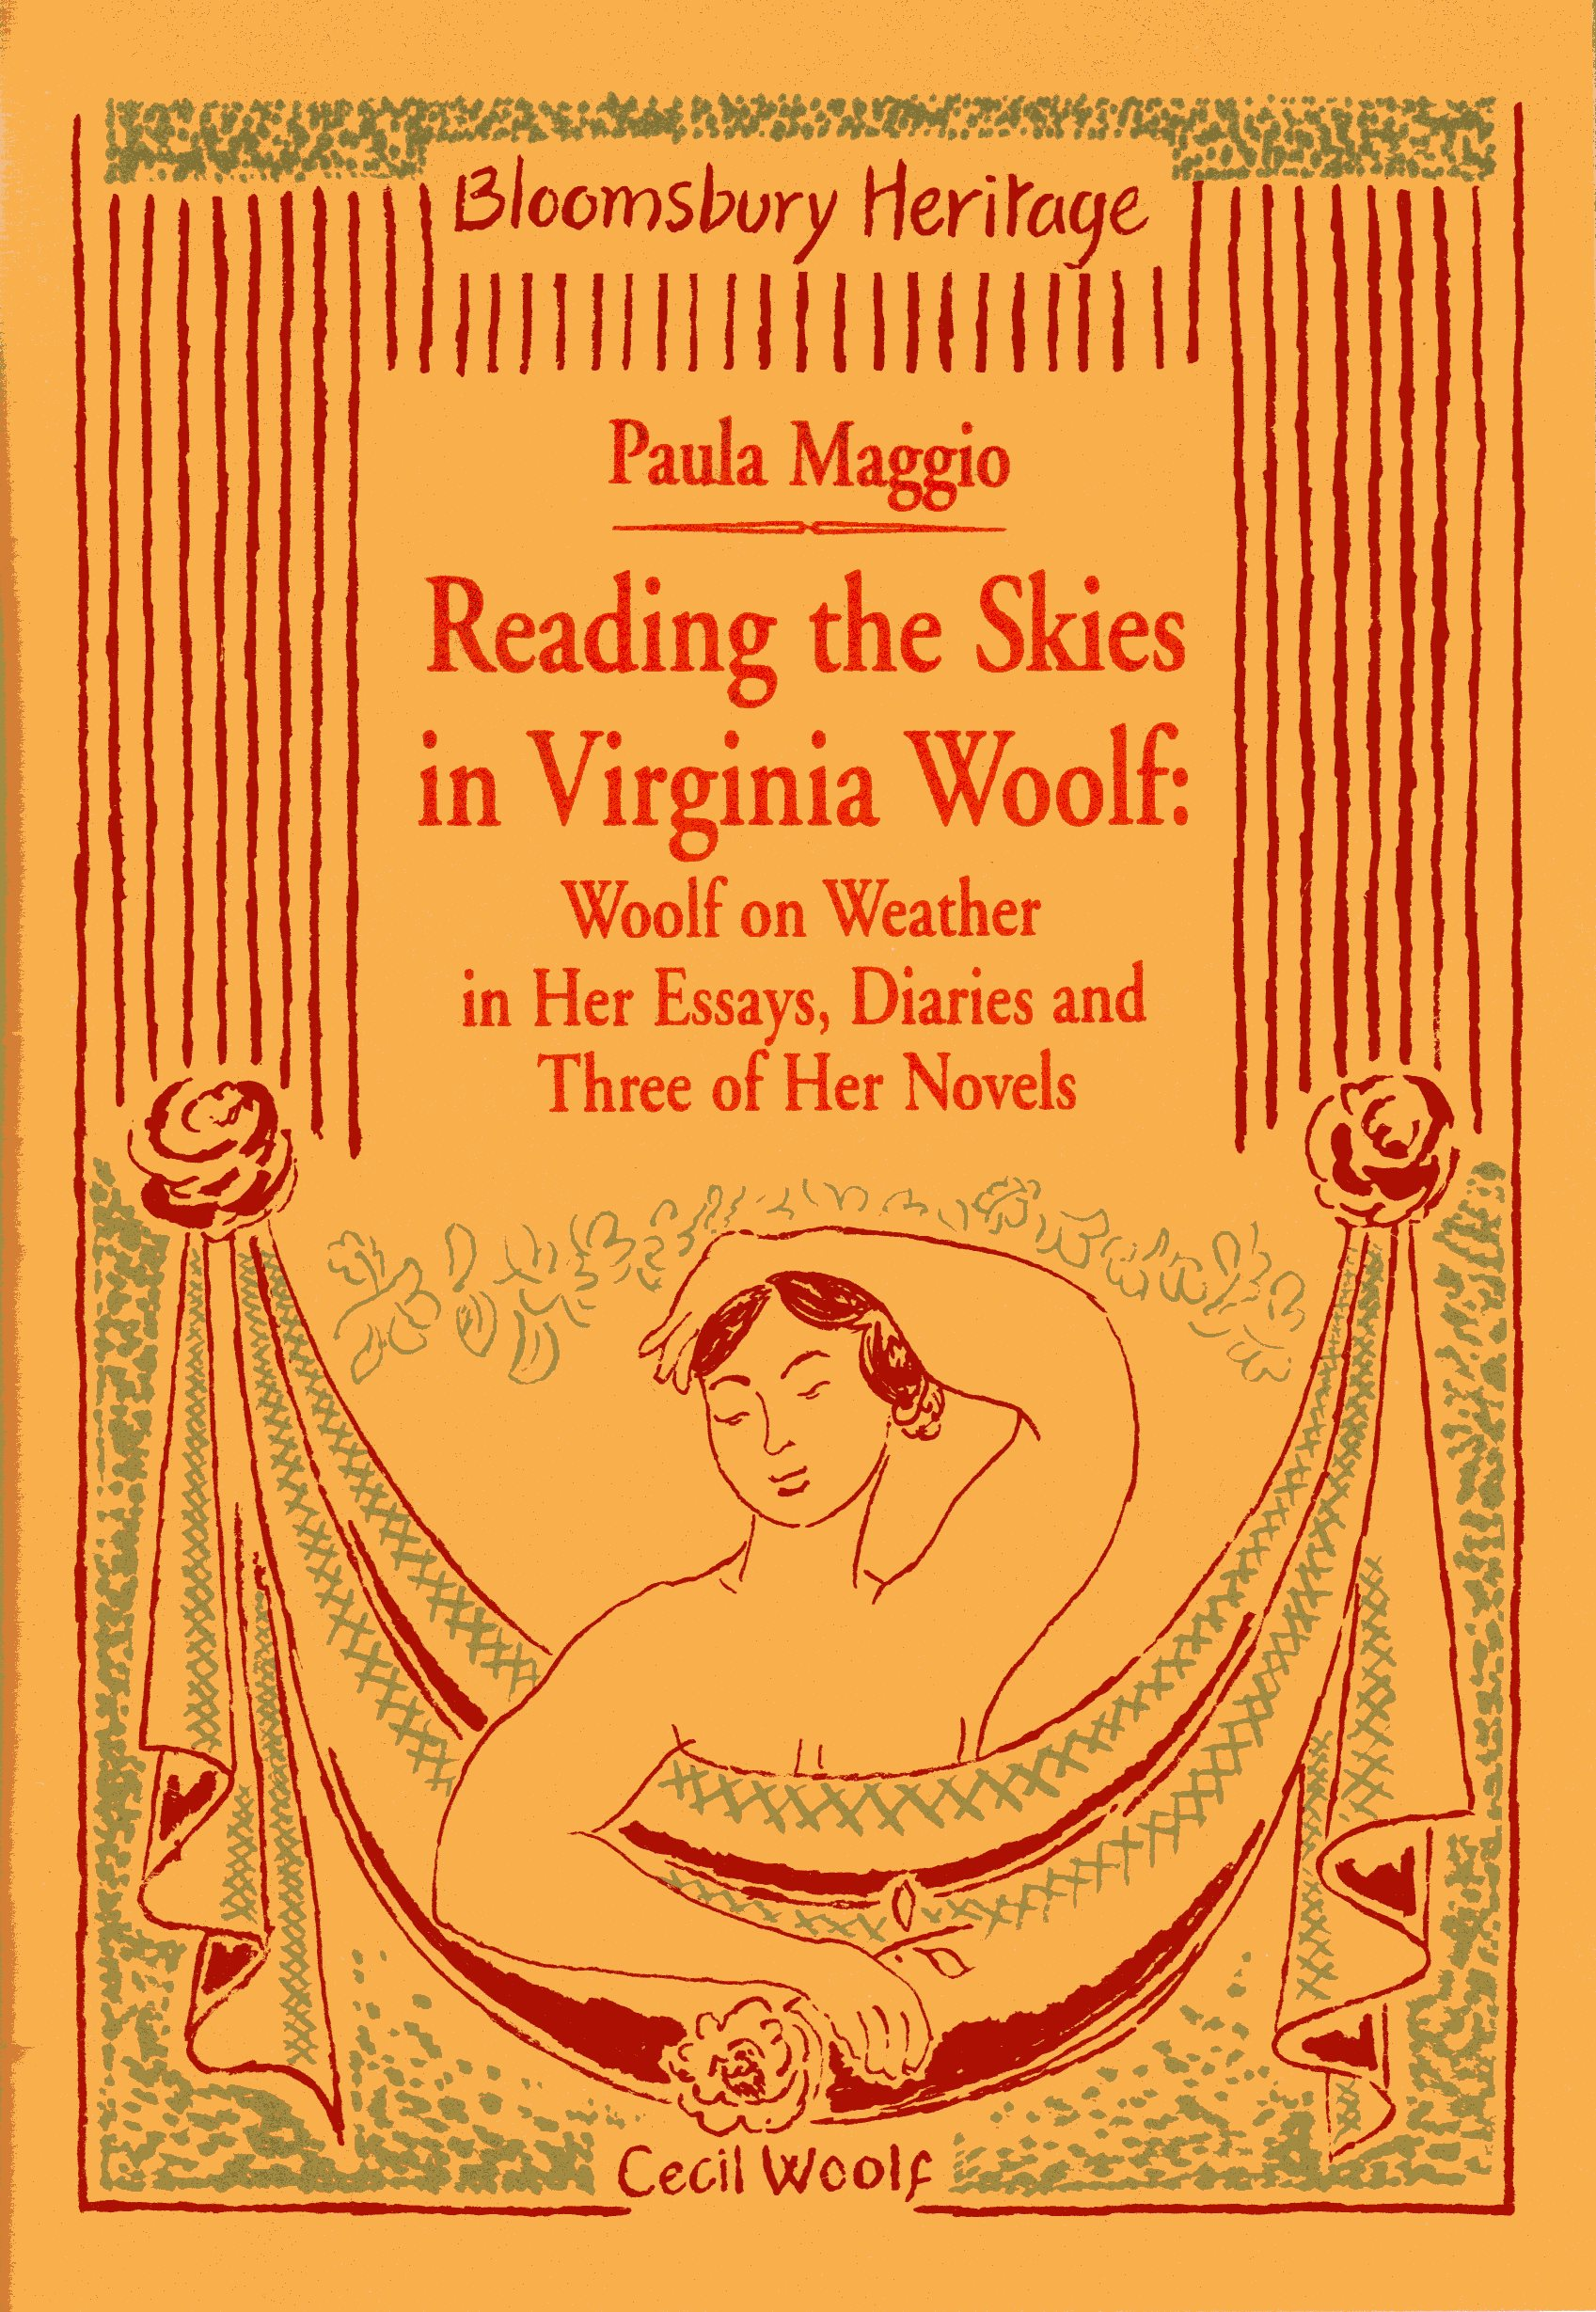 009 Reading The Skies Color016 Essay Example Virginia Woolf Unusual Essays Modern Pdf Woolf's Sketching Past Fiction Analysis Full